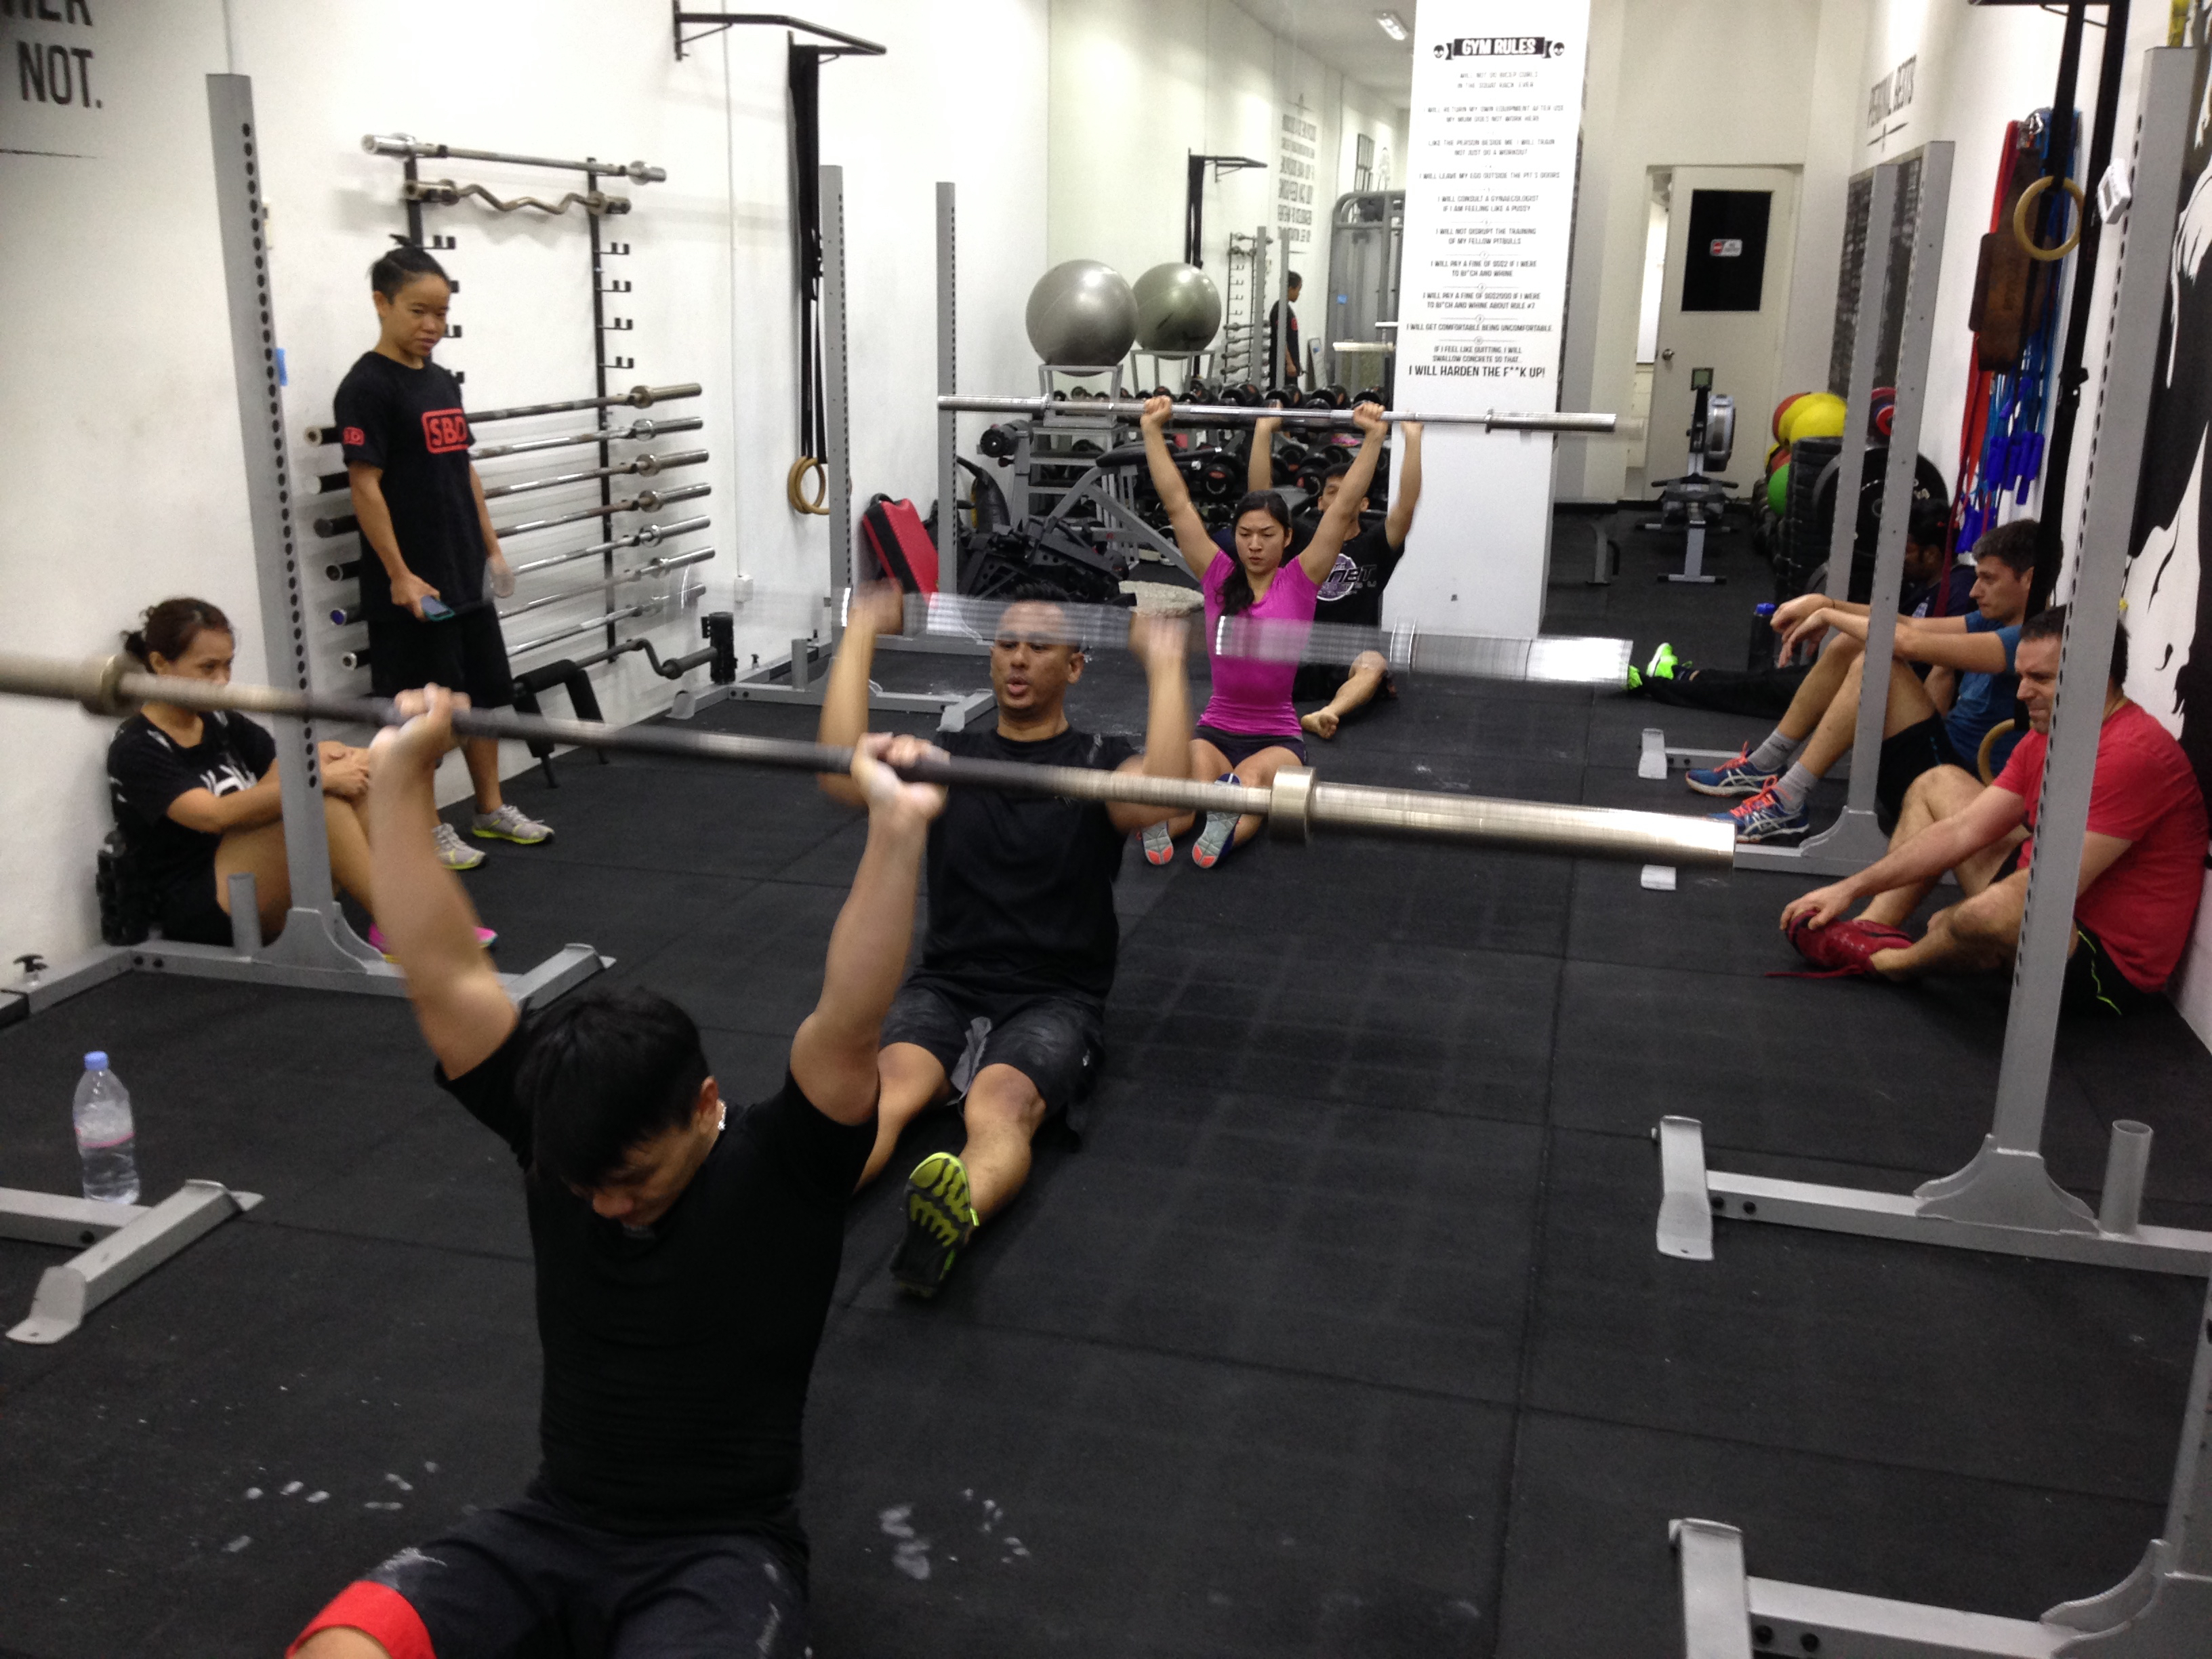 Oct 26,  · List of Gyms in Singapore. Discussion in 'Gym Membership Singapore' started by sinful, (Ladies Only Gym) BEDOK Contours Express (Fitness Boutique) Blk Bedok Central, # Anytime Fitness Singapore Gym Outlets Anytime Fitness - .